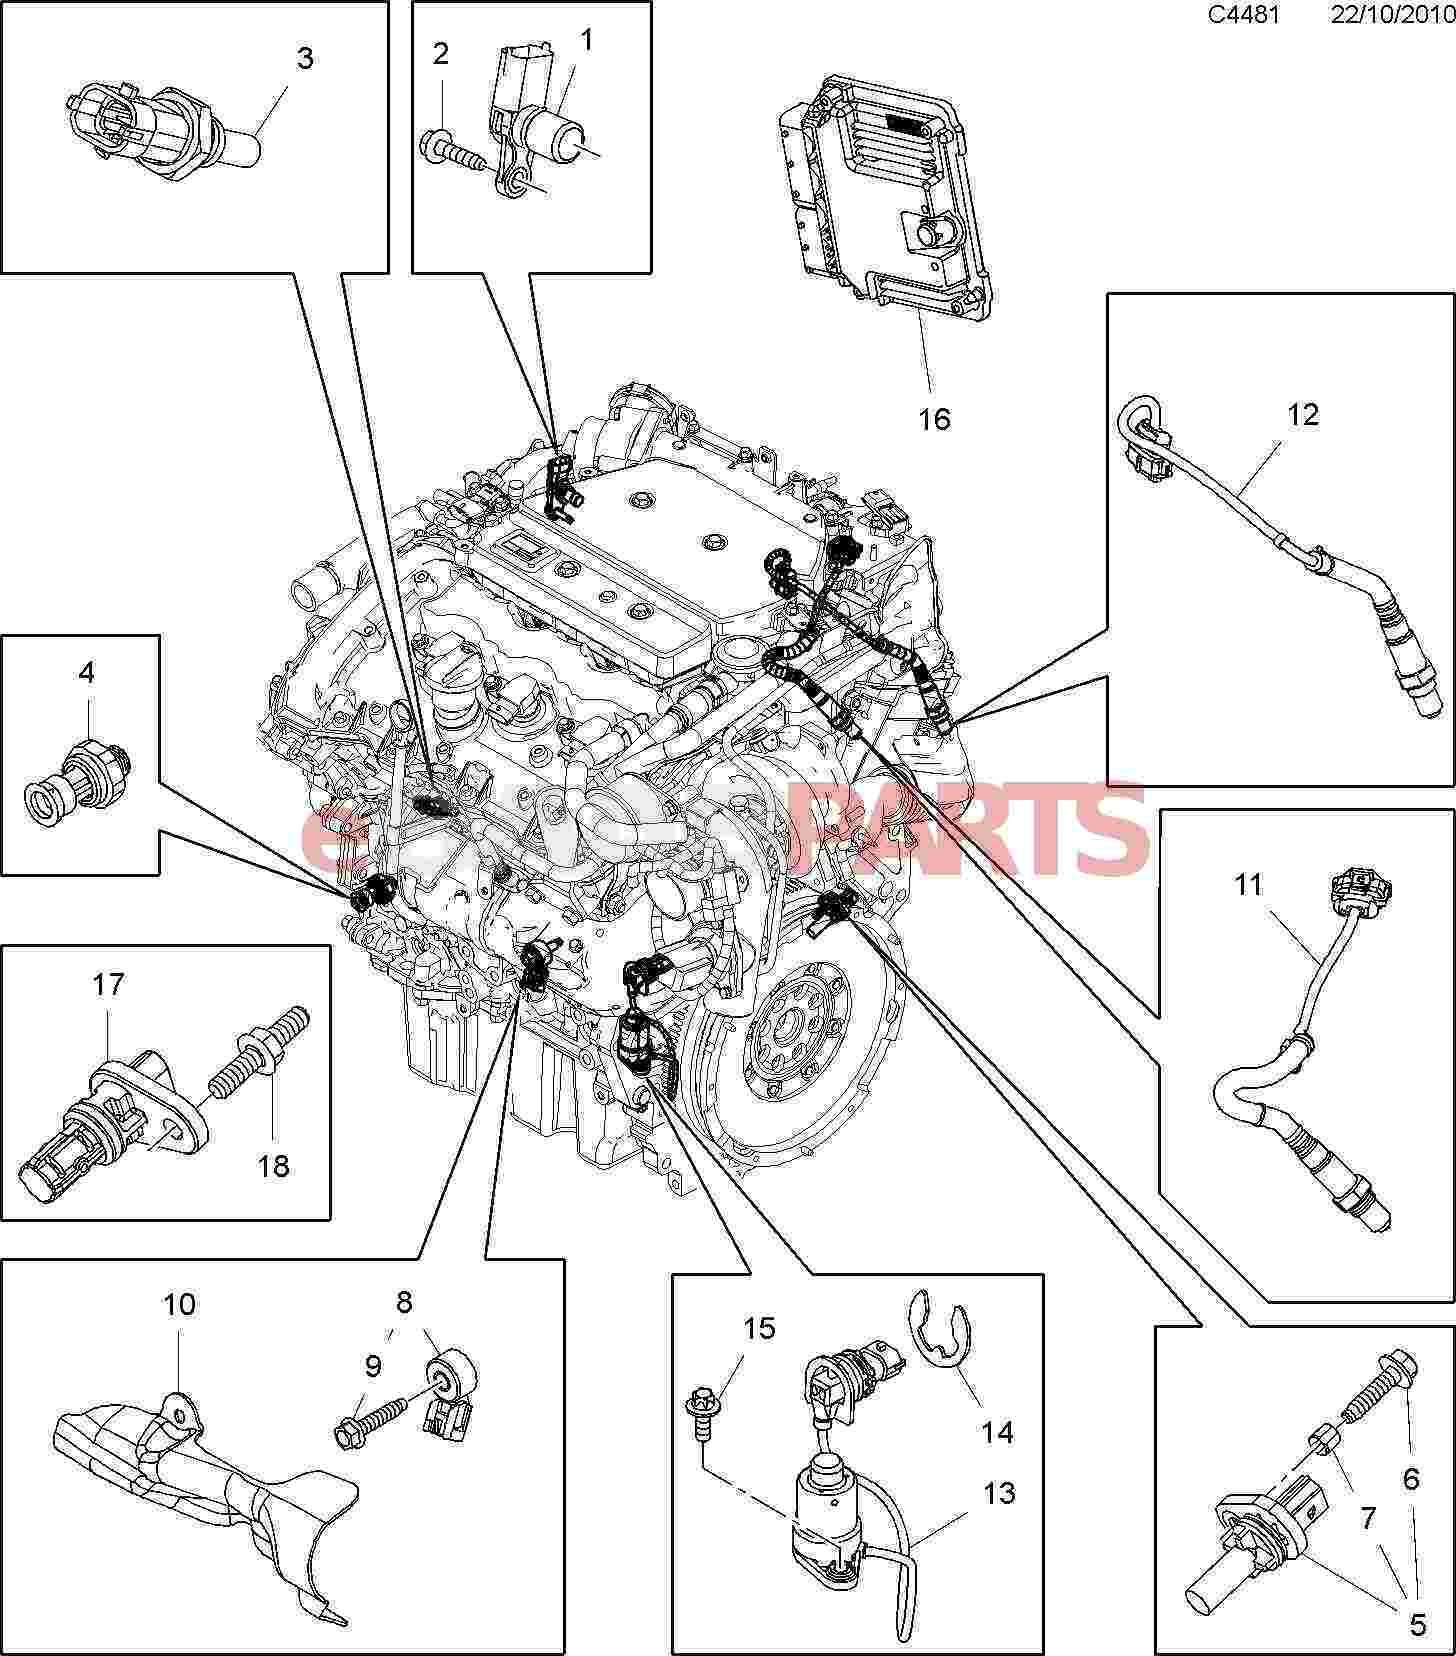 Saab 9 3 Engine Diagram 2004 Saab 9 5 Wiring Diagram Saab Wiring Diagrams Instructions Of Saab 9 3 Engine Diagram